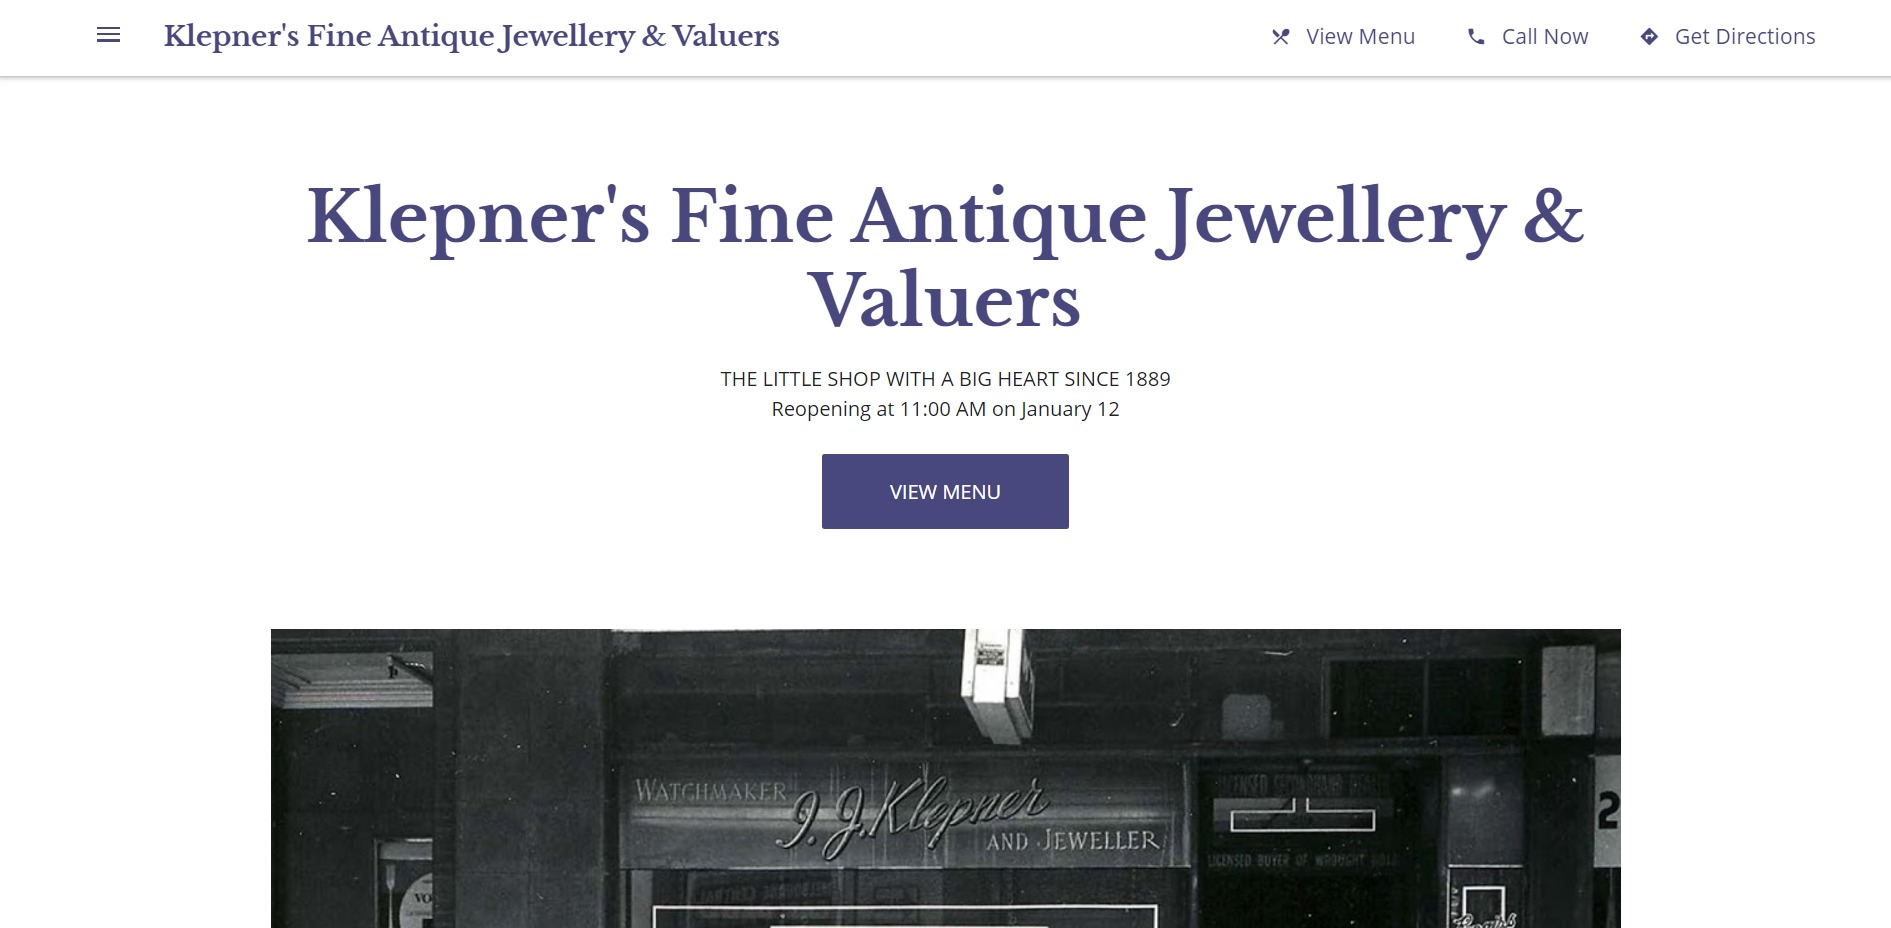 Klepner's Fine Antique Jewellery & Valuers